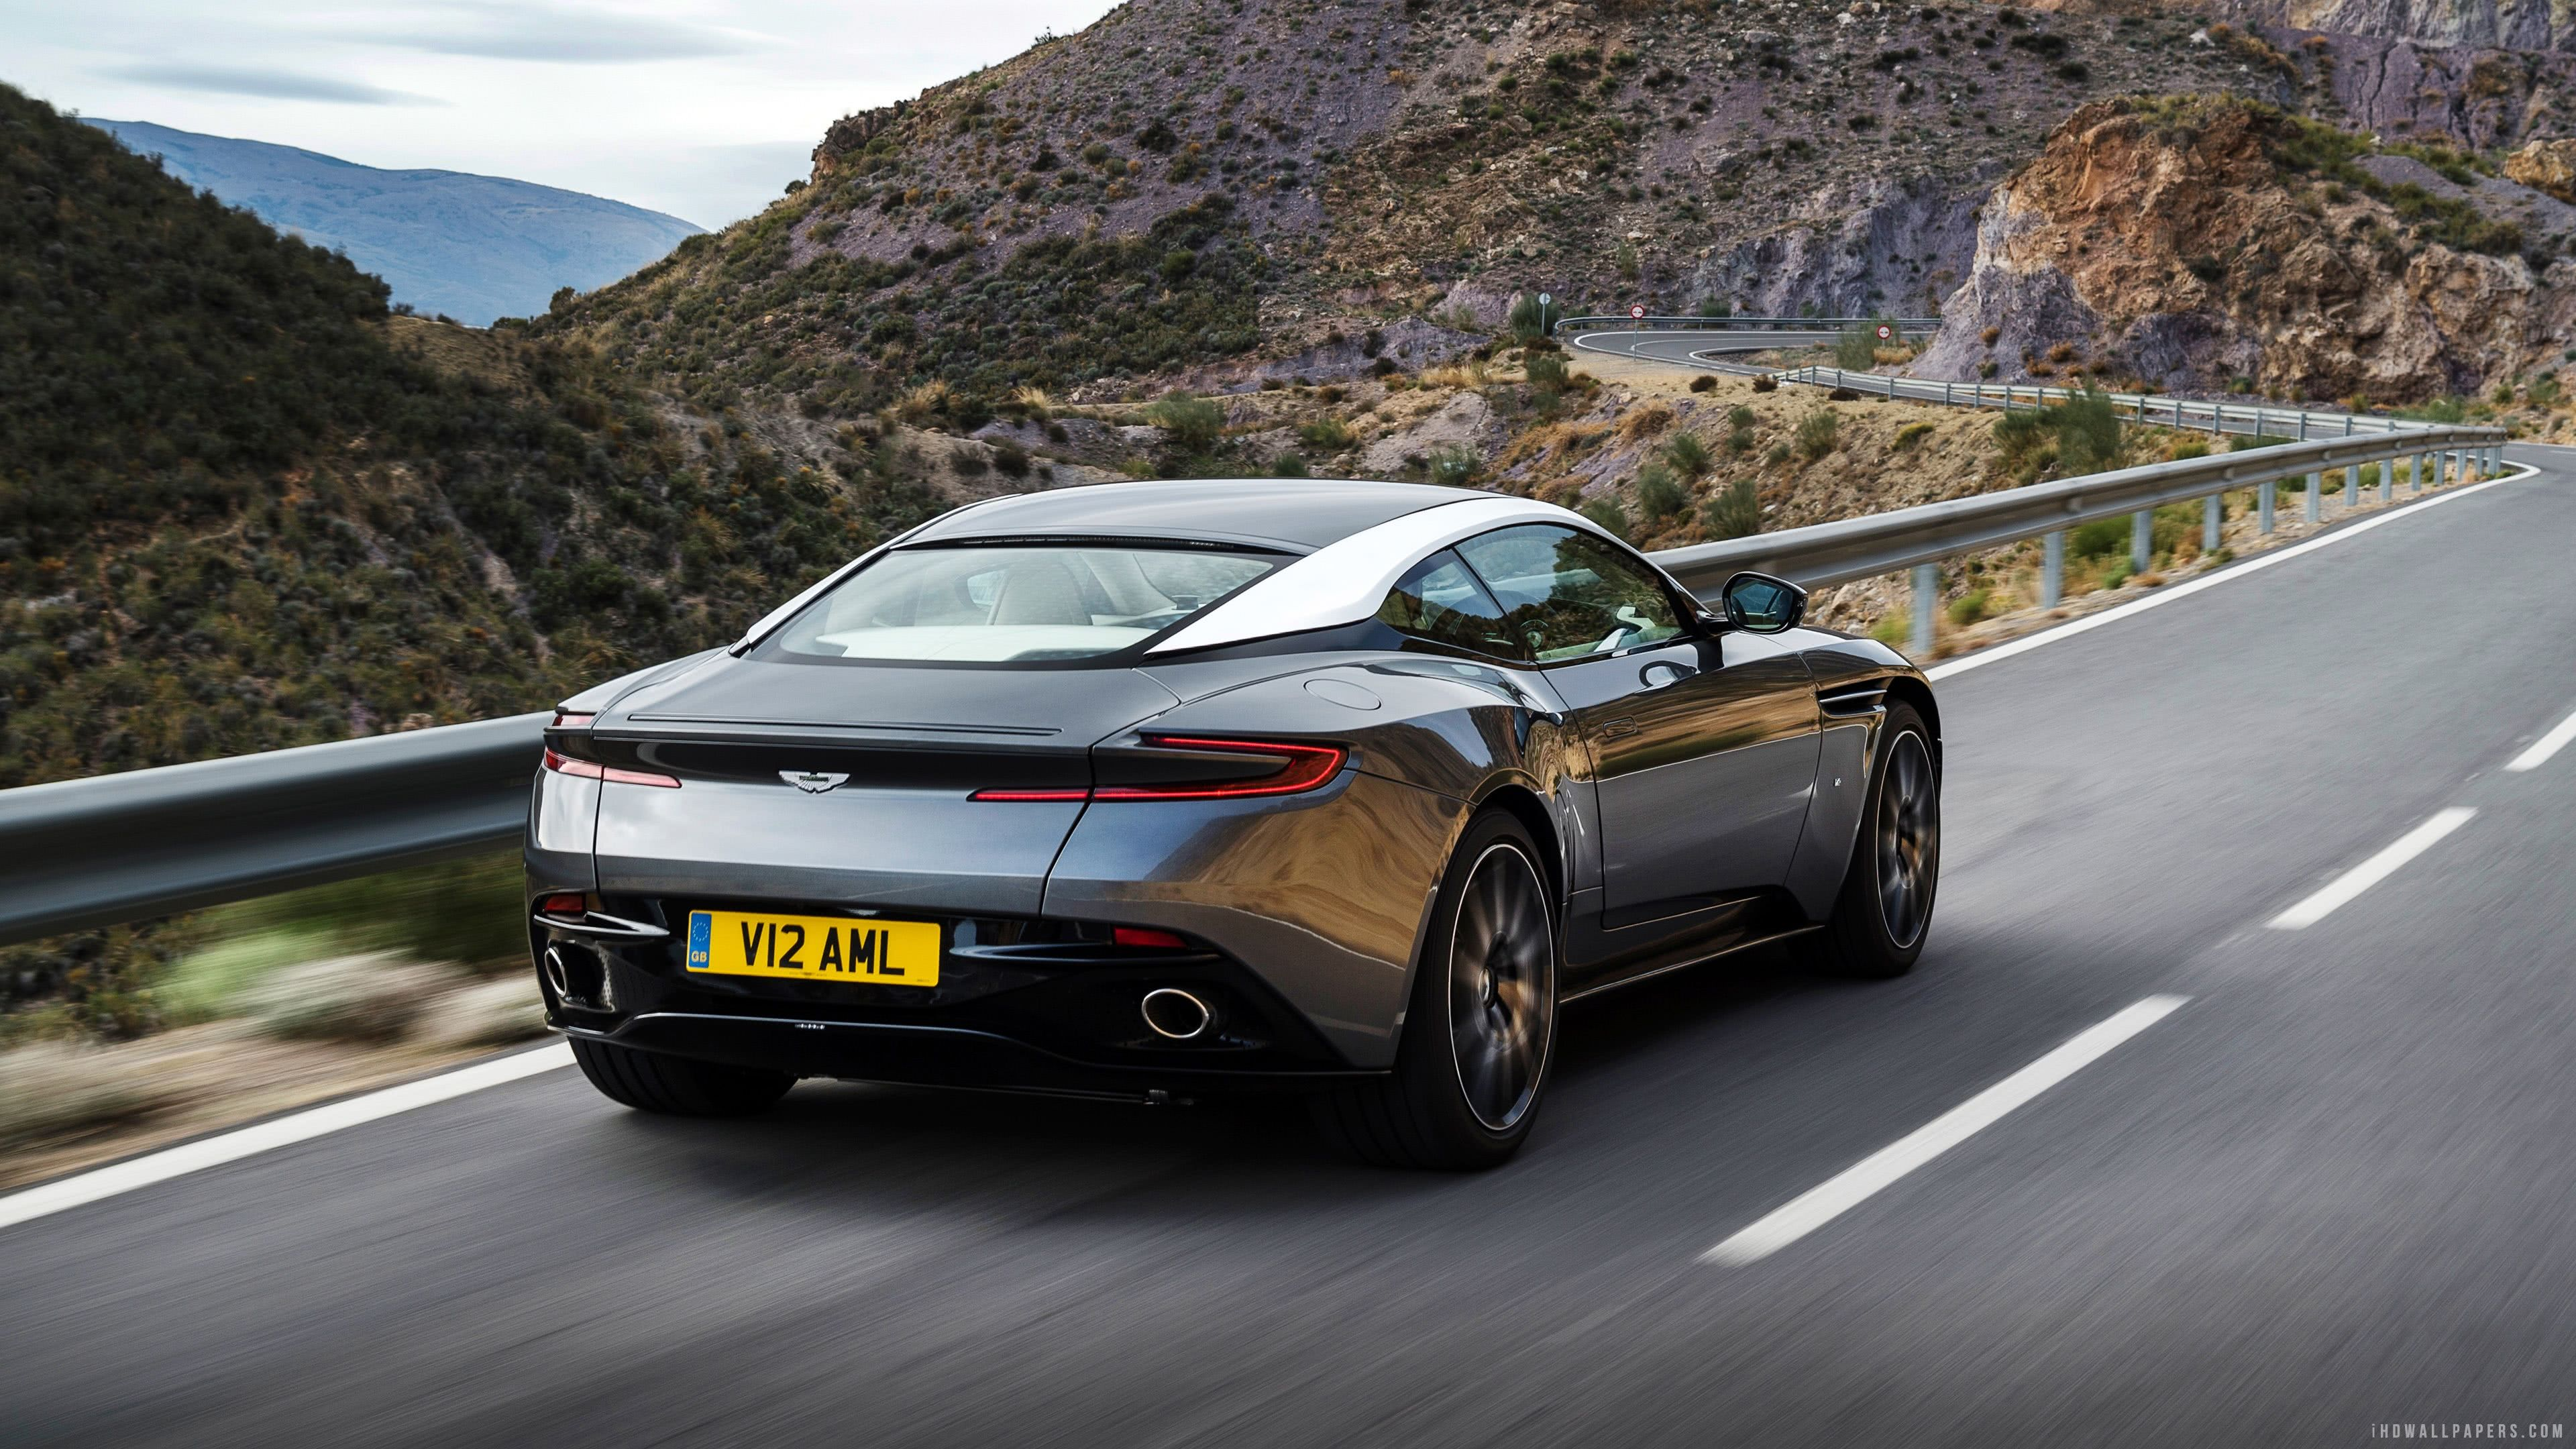 black aston martin db11 uhd 4k wallpaper